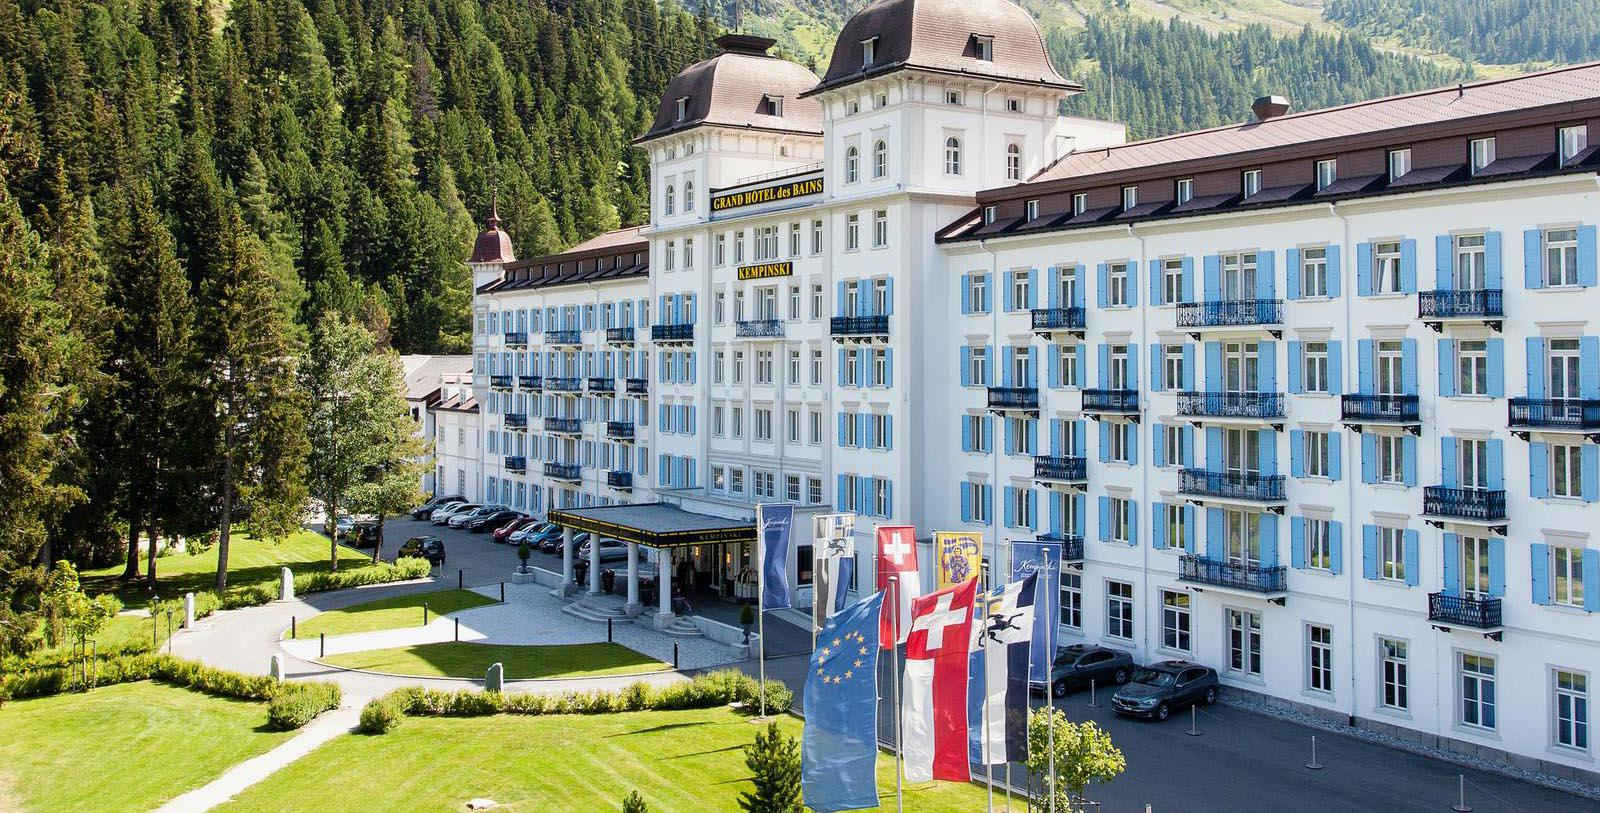 Daytime exterior of Kempinksi Grand Hotel des Bains St. Moritz in Switzerland.